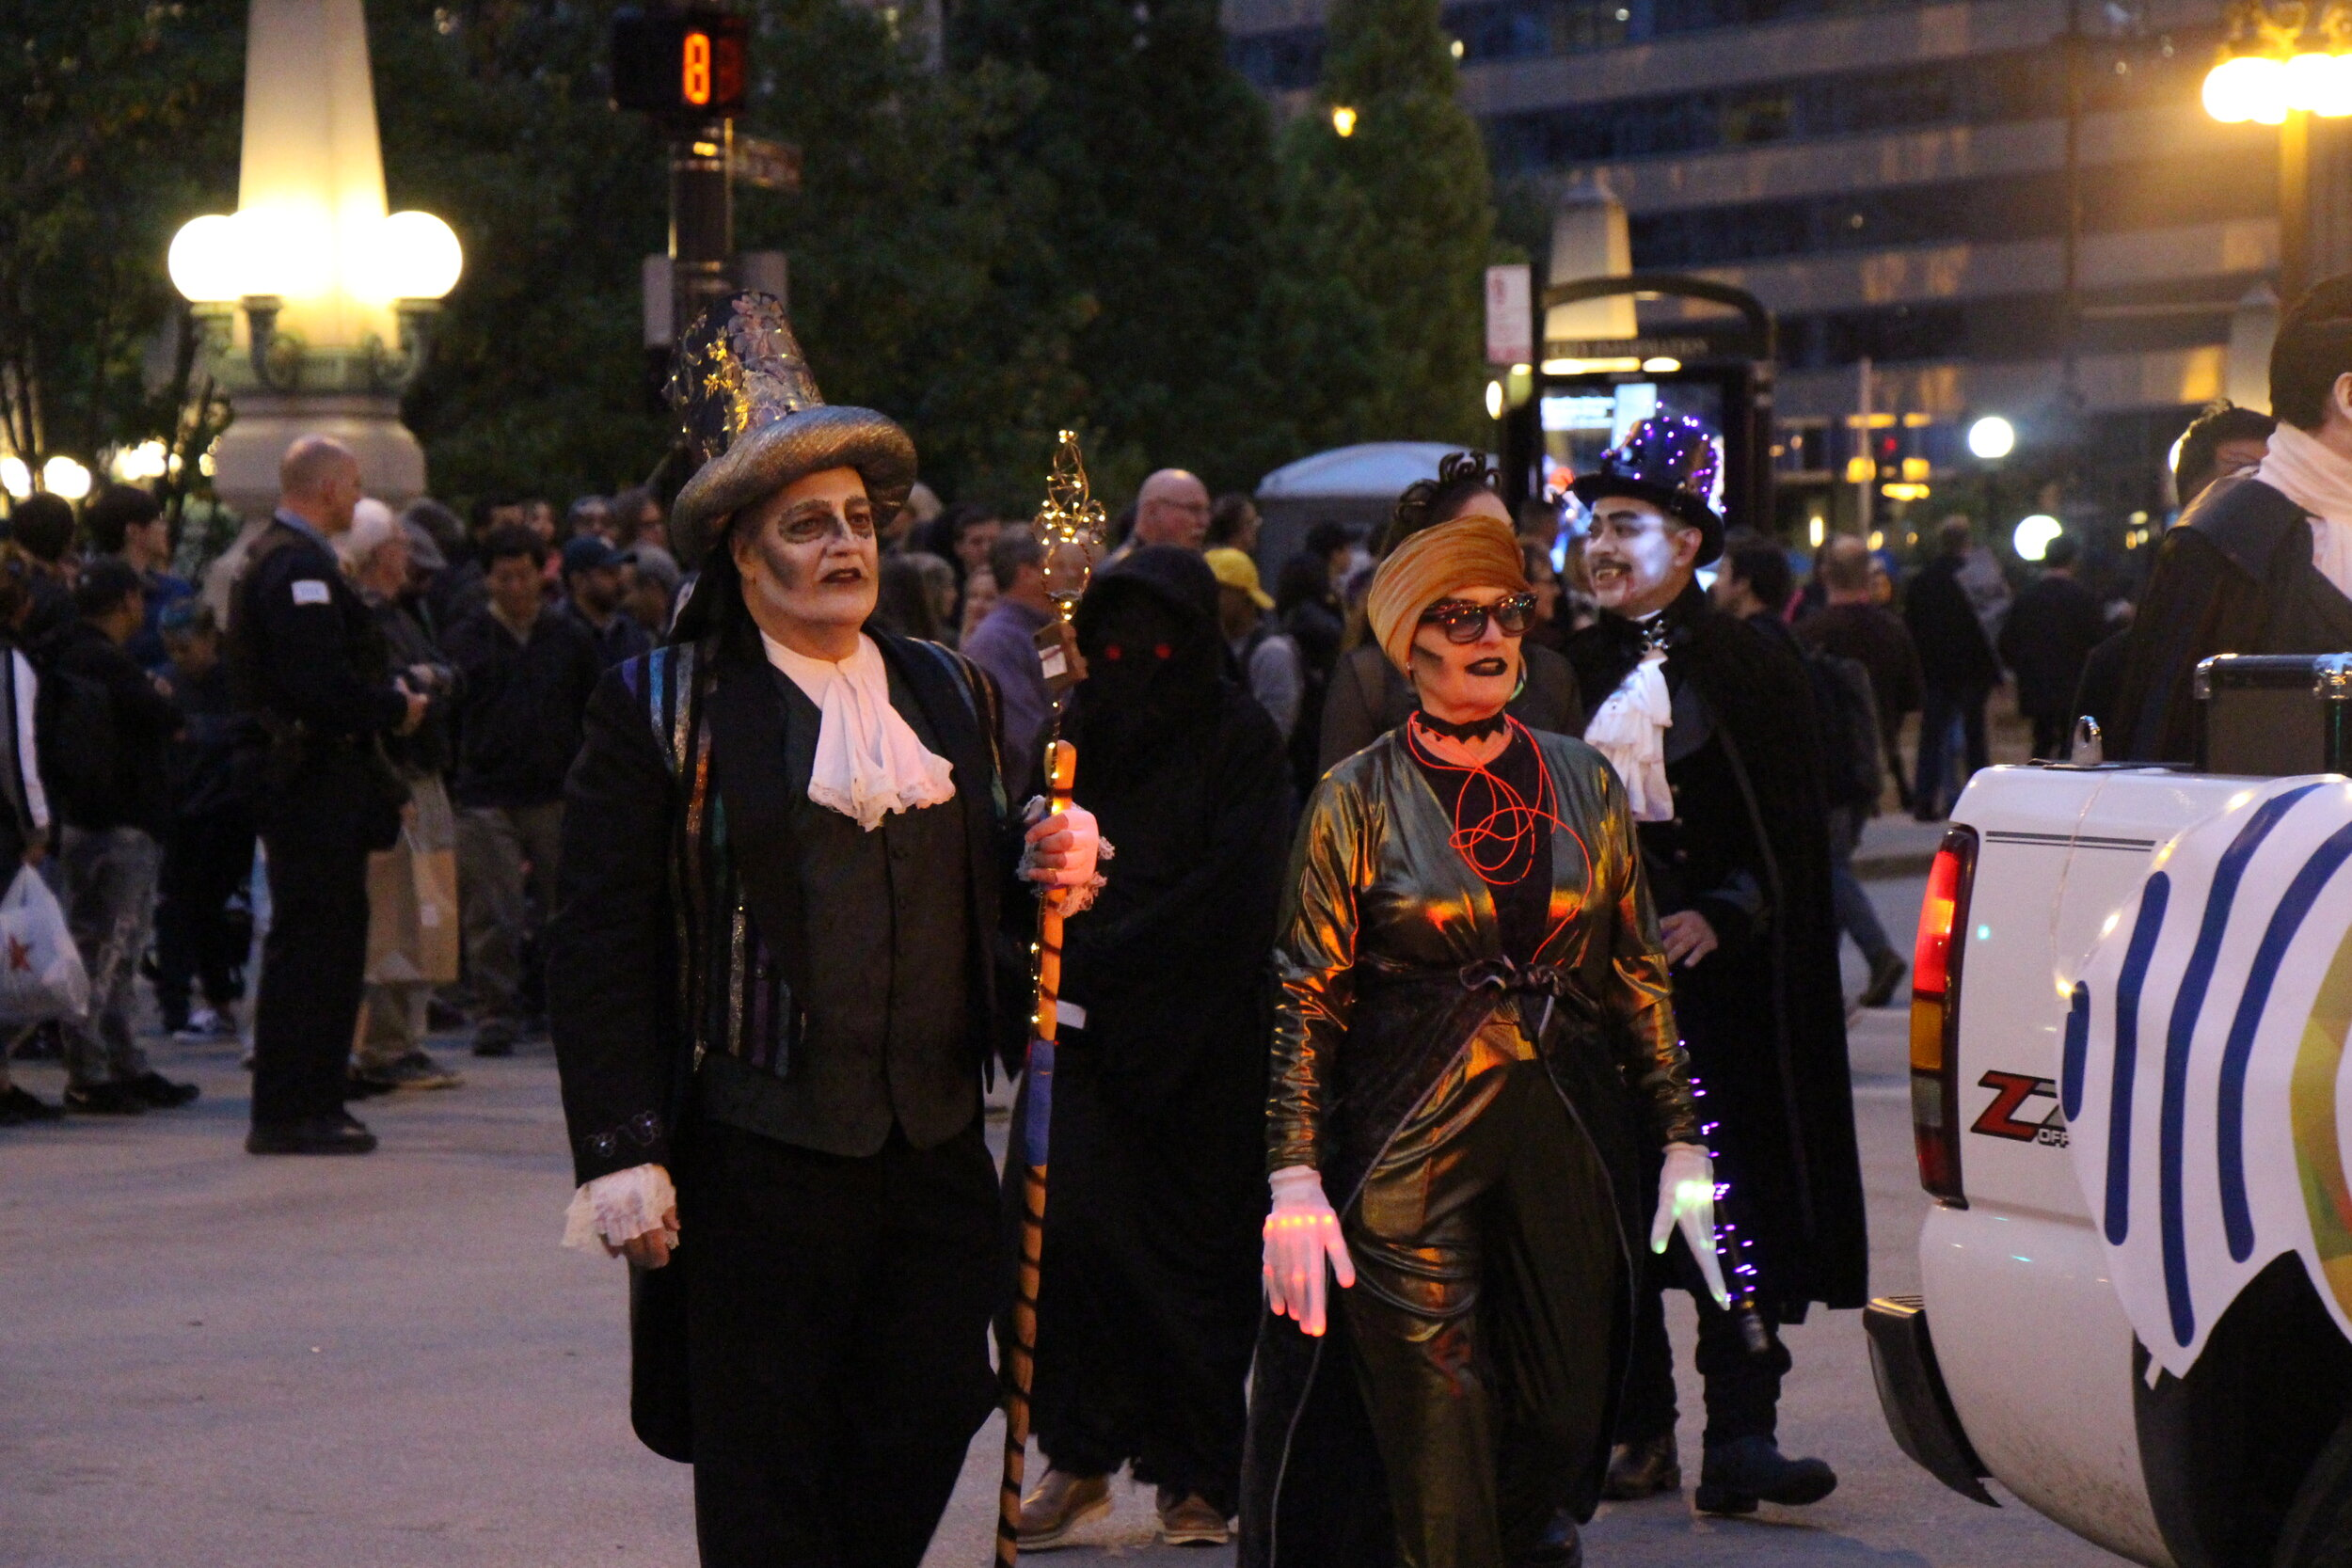 Performers dressed in spooky costumes at the parade.